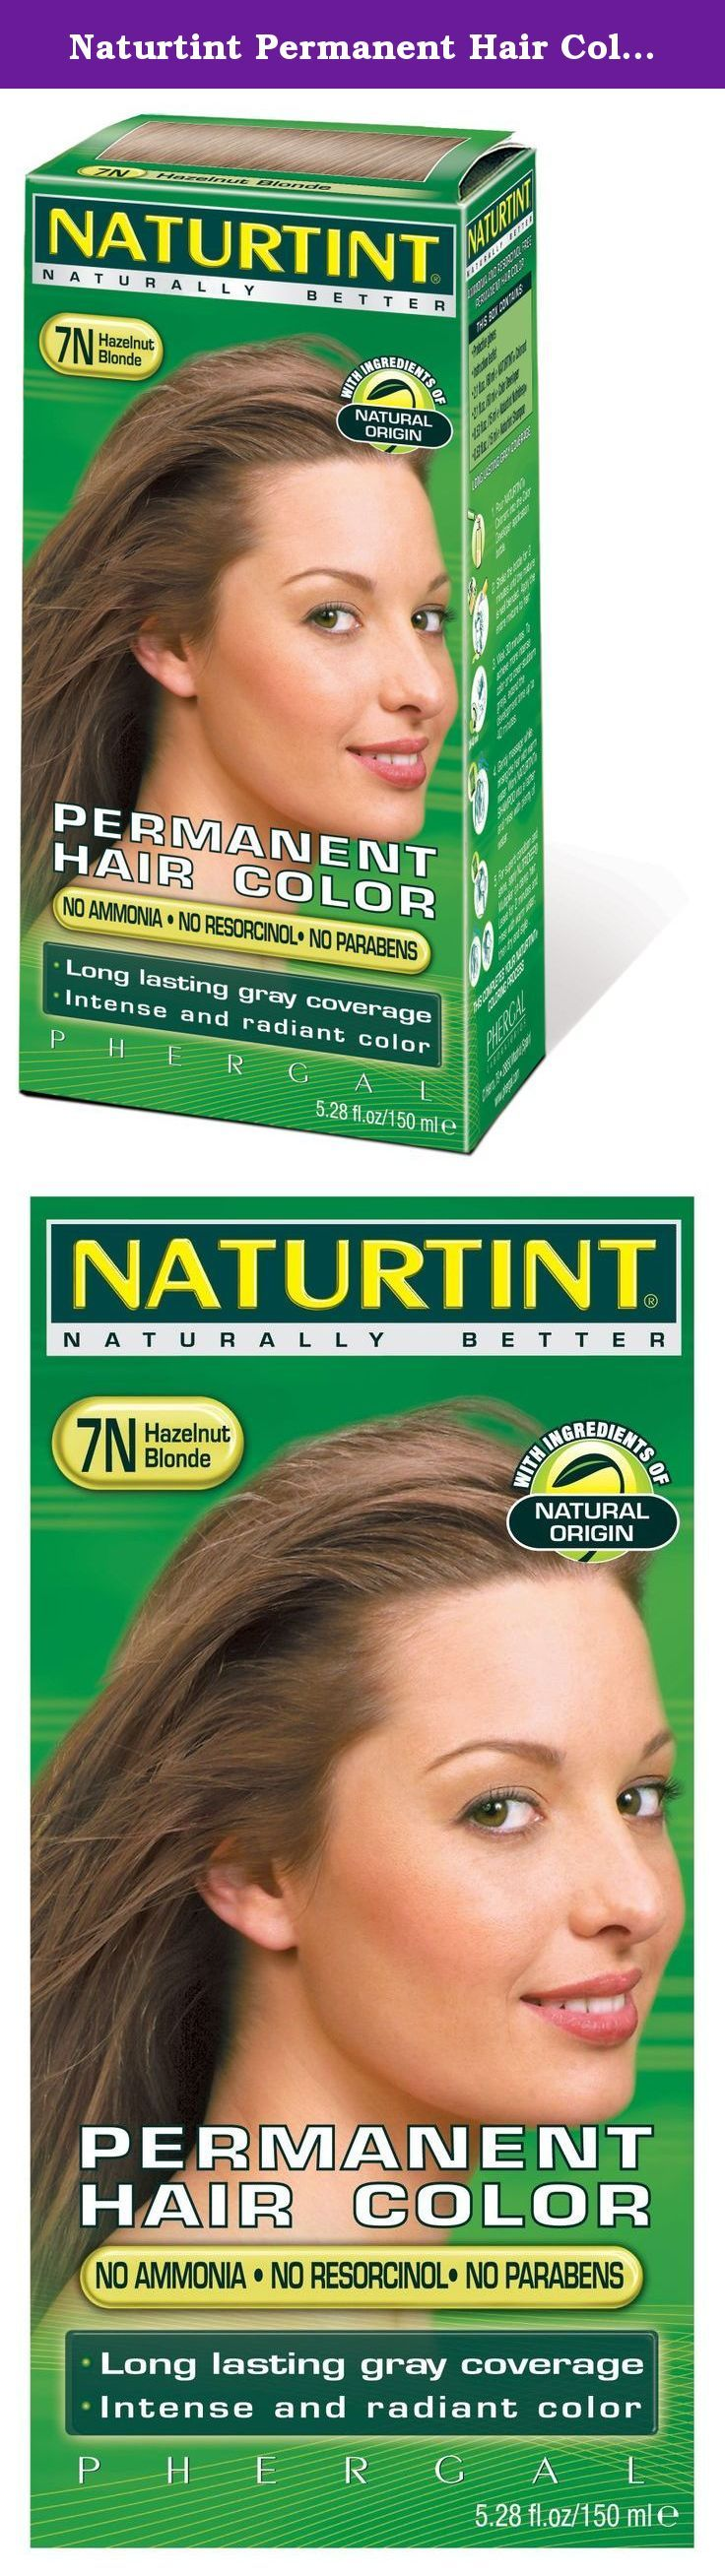 Naturtint Permanent Hair Color - 7N Hazelnut Blonde, 5.28 fl oz (6-pack). Naturtint® is the first permanent hair color, free of harsh chemicals, that provides both beautiful, radiant color and is healthy for your hair! Combining natural activators that nourish your hair and micro-pigments that provide a more intense color, Naturtint even covers gray completely in one application, while restoring softness, shine and vitality. Naturtint is available in 29 mixable shades, and each package...